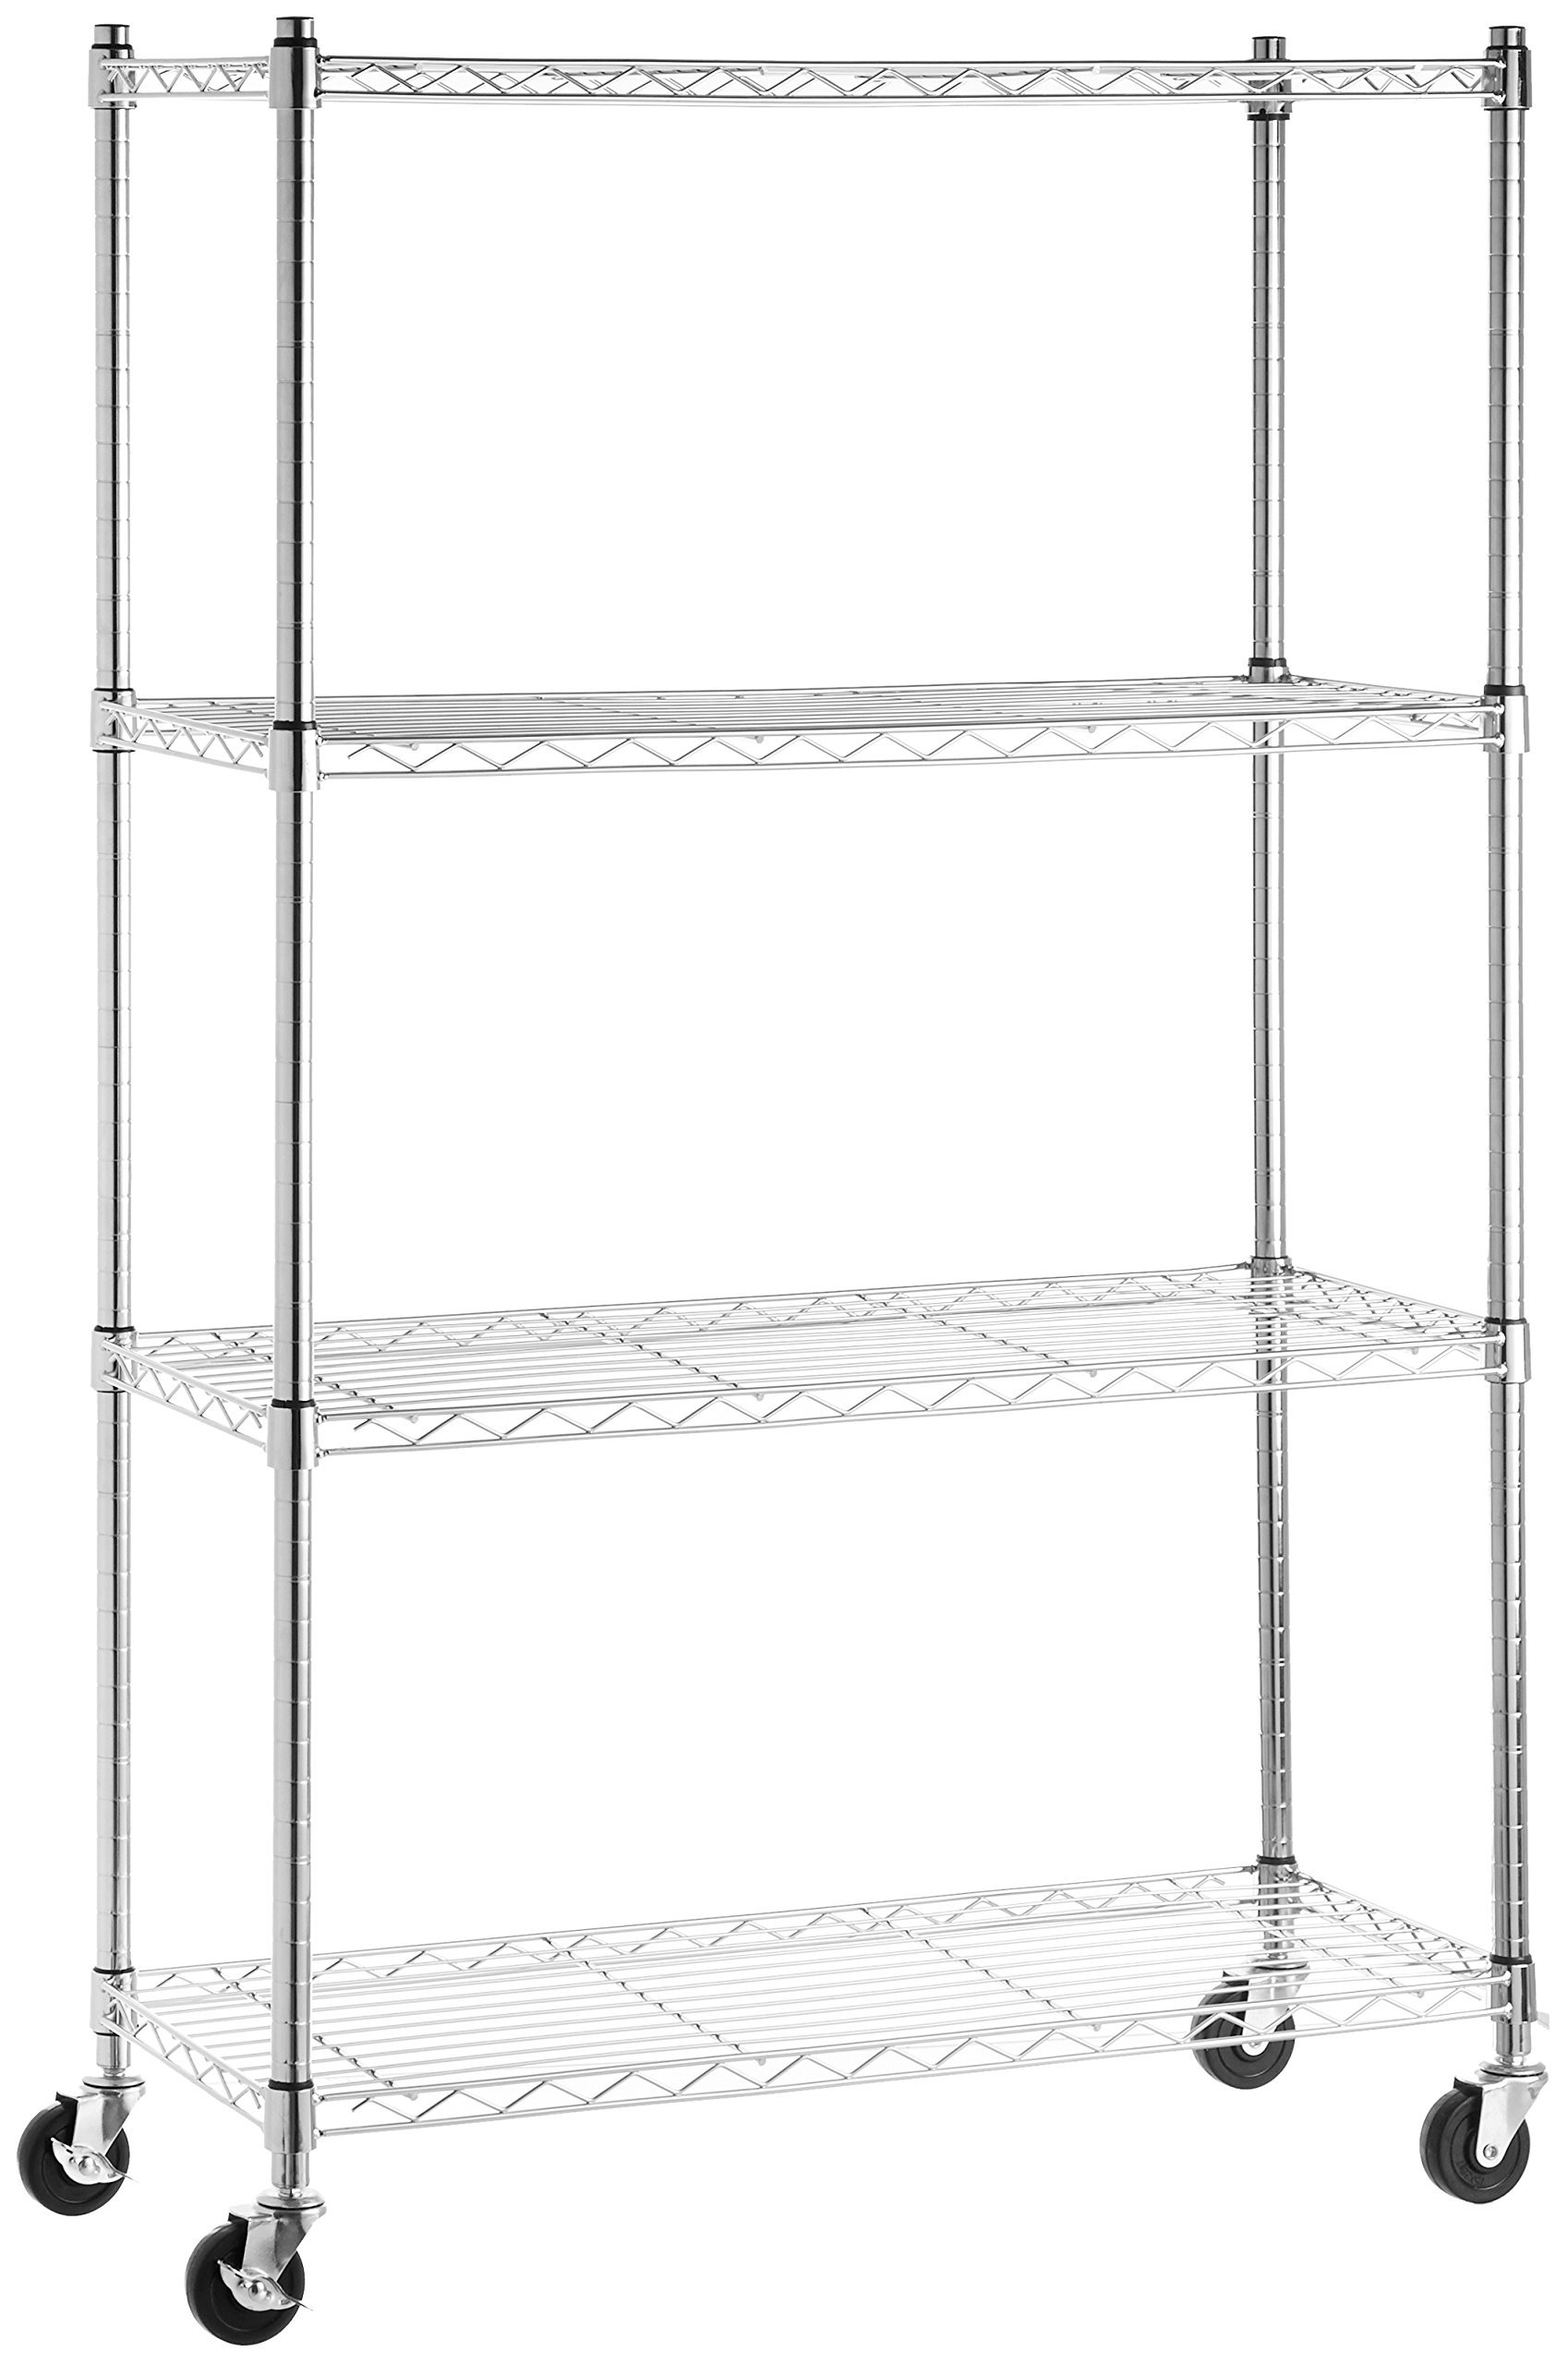 Garage 4 Tier Shelf Shelving Unit on 3\'\' Casters Store Kitchen ...